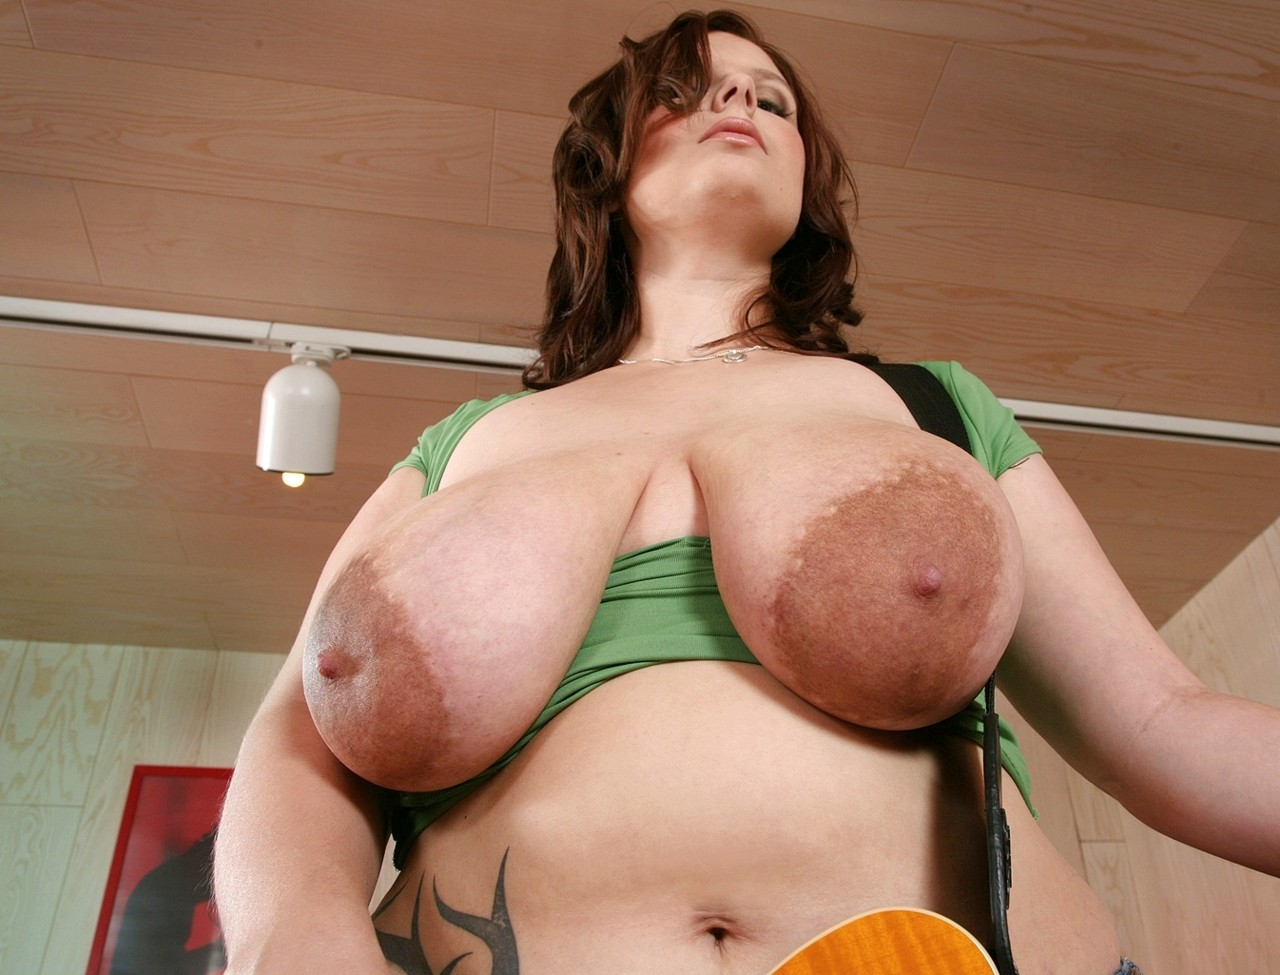 Pregnant with big areolas